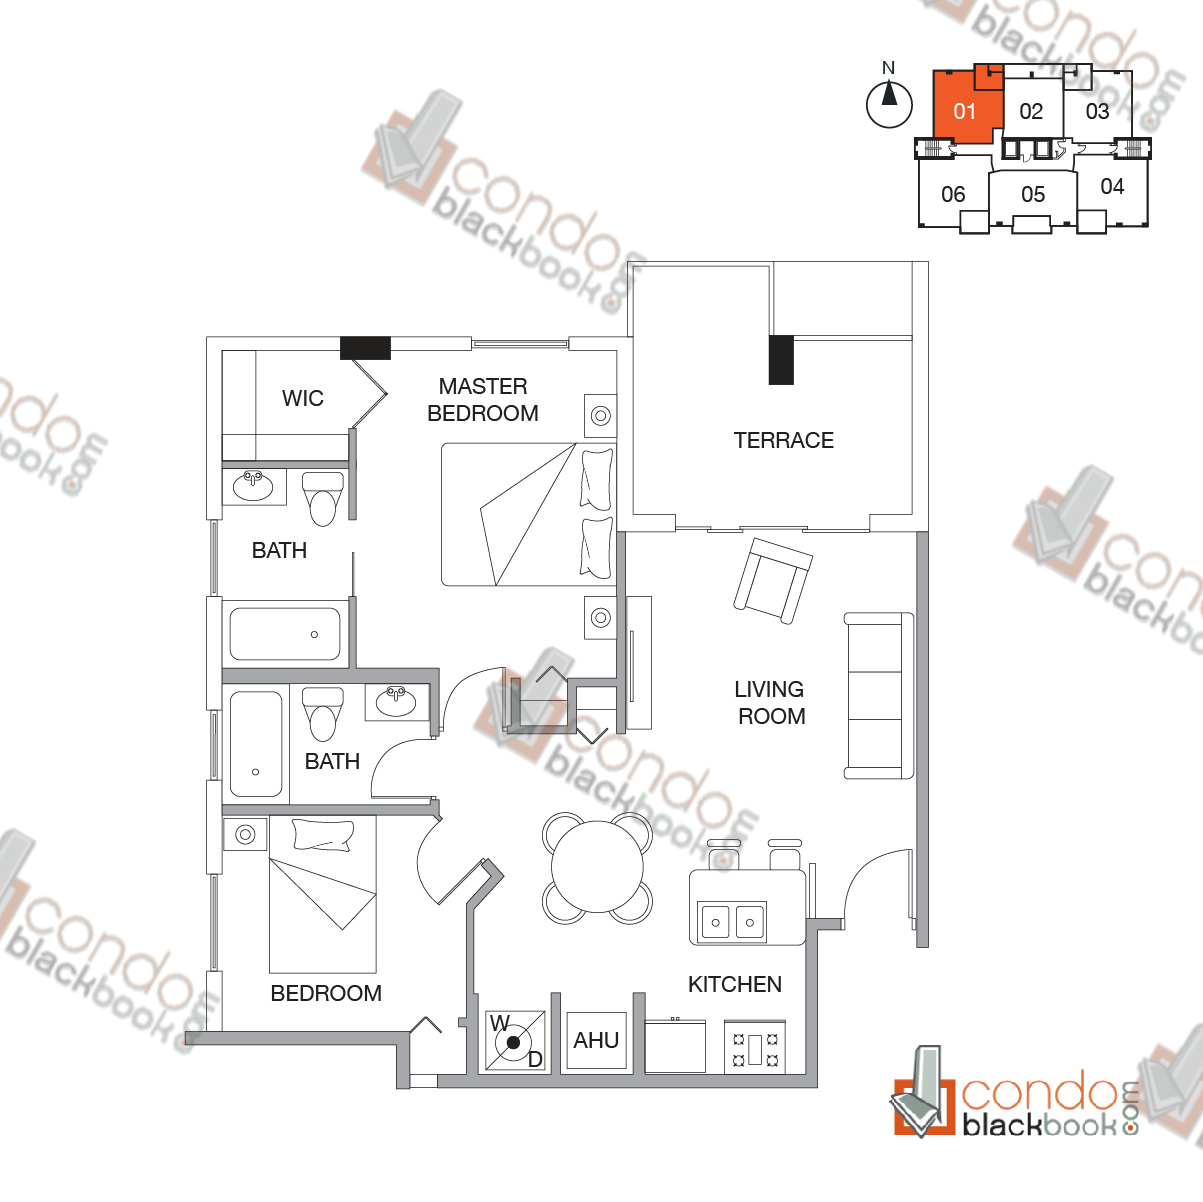 Floor plan for Emilia Edgewater  Edgewater Miami, model A, line 01,  2/2 bedrooms, 762 sq ft